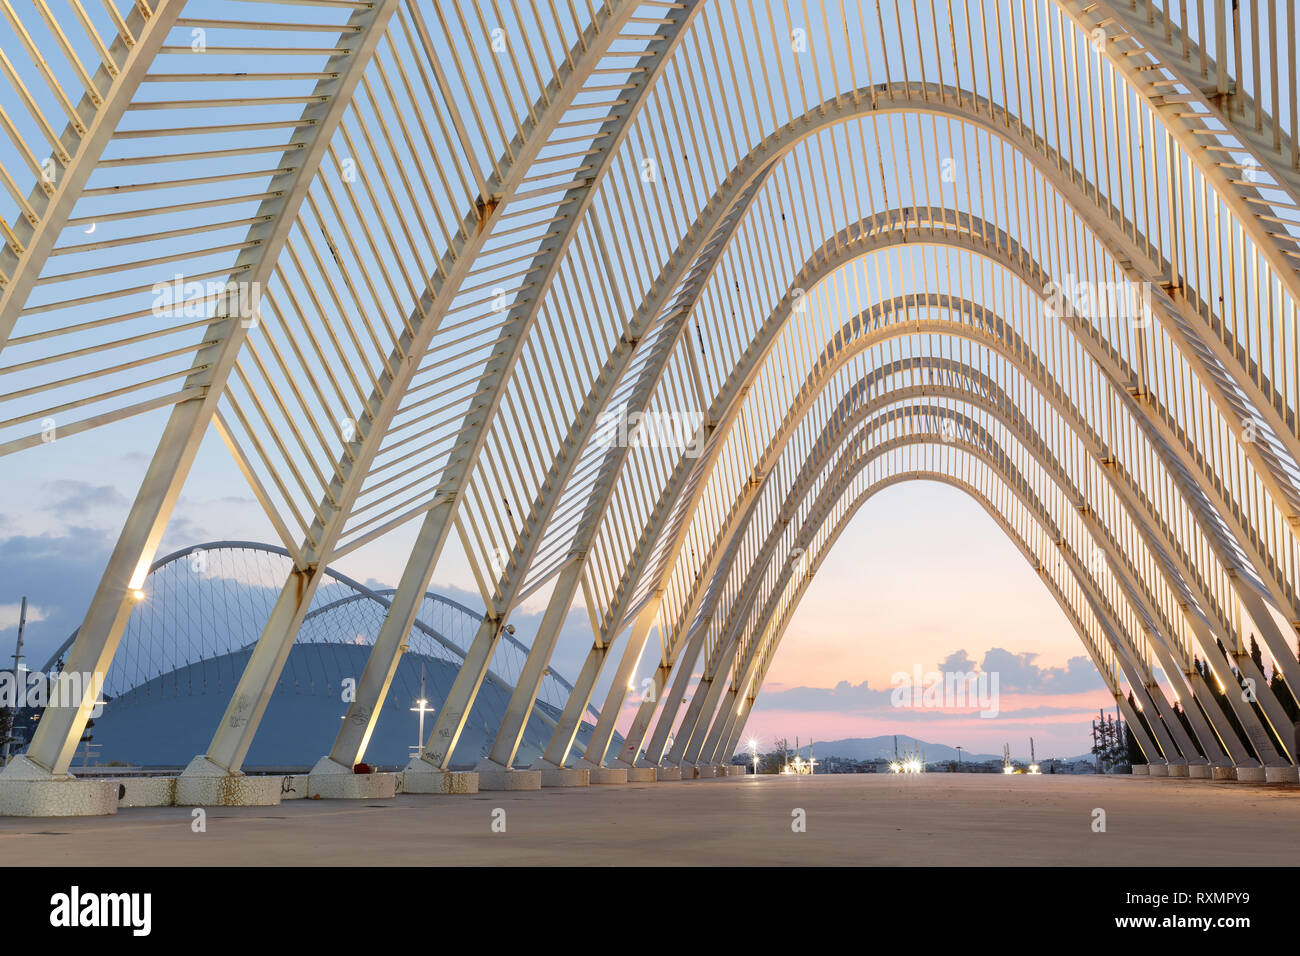 Athens, Greece - November 11, 2018: The Promenade in Olympic Sports Complex OACA in Athens, Greece. - Stock Image